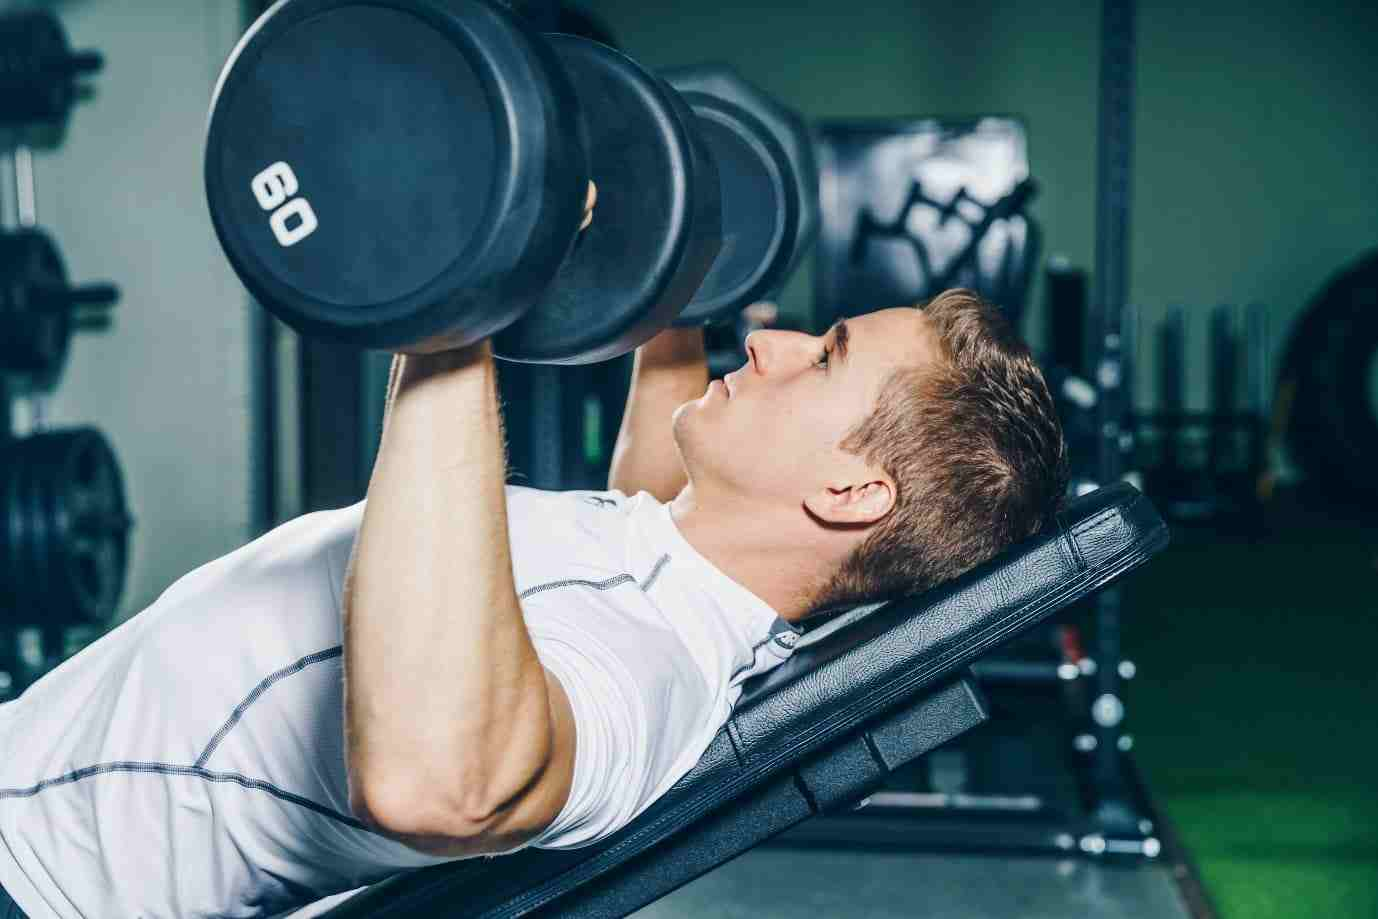 a man dumbbell training